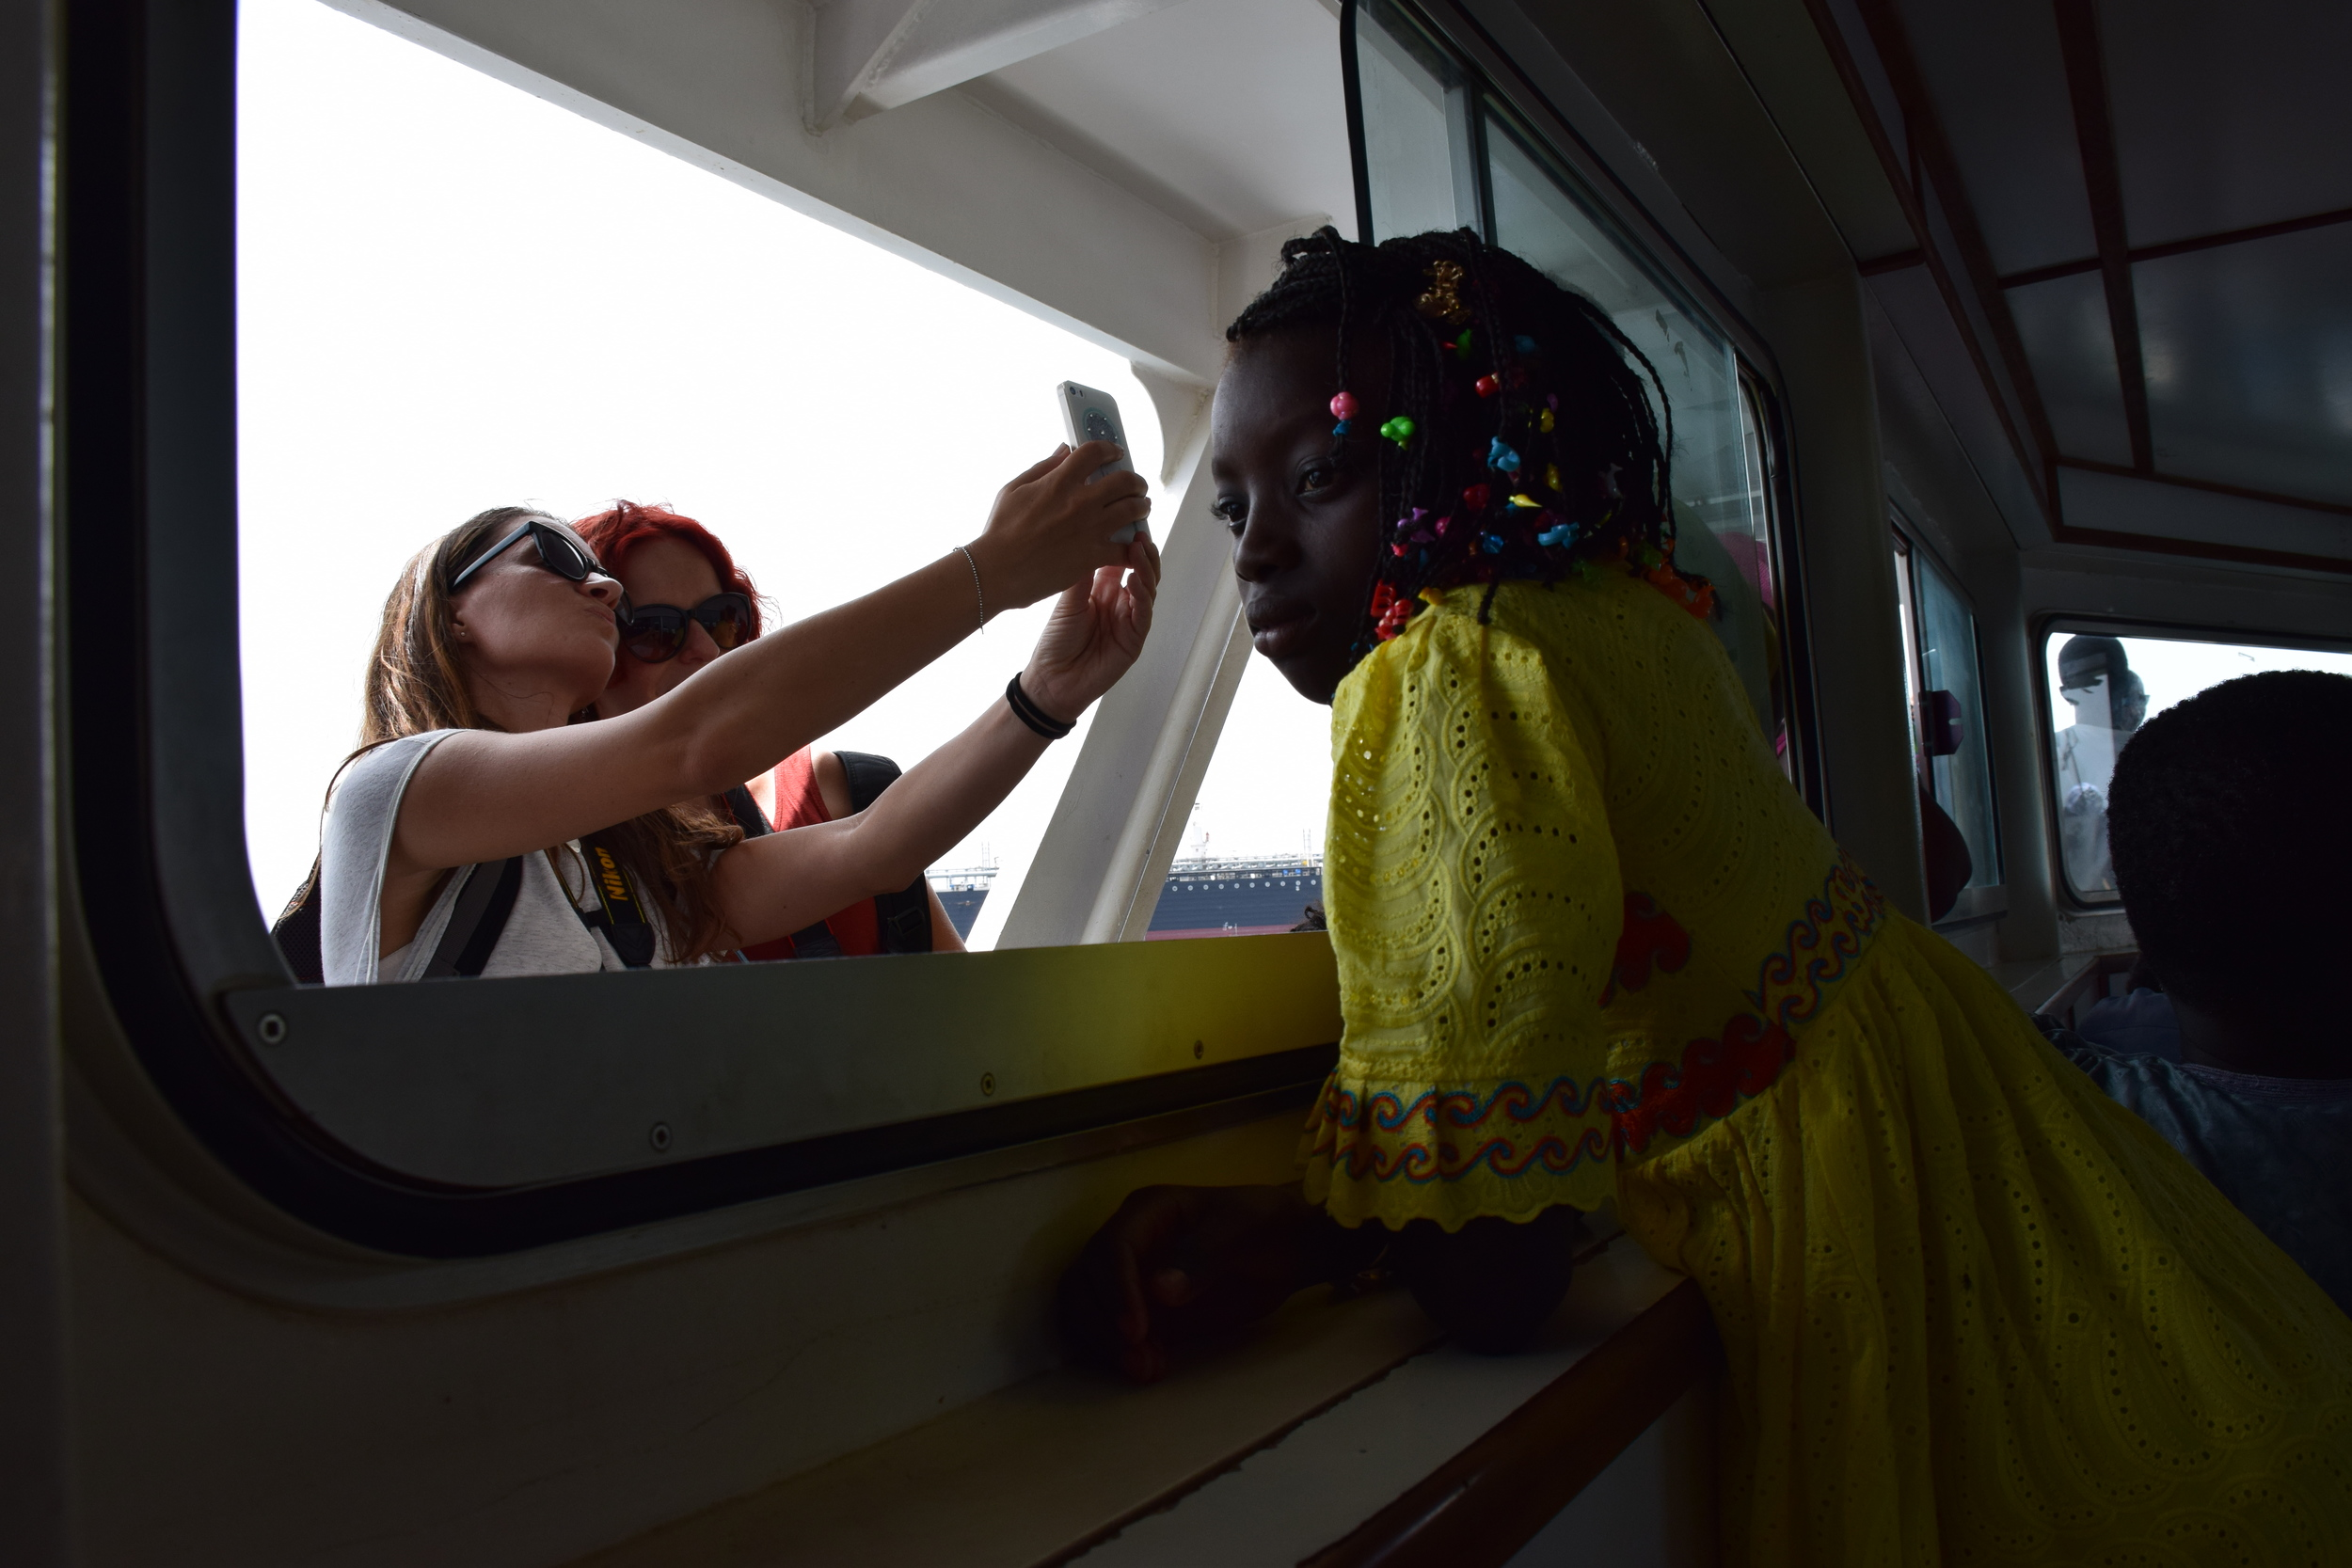 On the ferry from Dakar to Gorée, I was struck by the juxtaposition of the little girl's thoughtfulness and brightly colored clothing, and tourist selfies. There is much to learn from children.